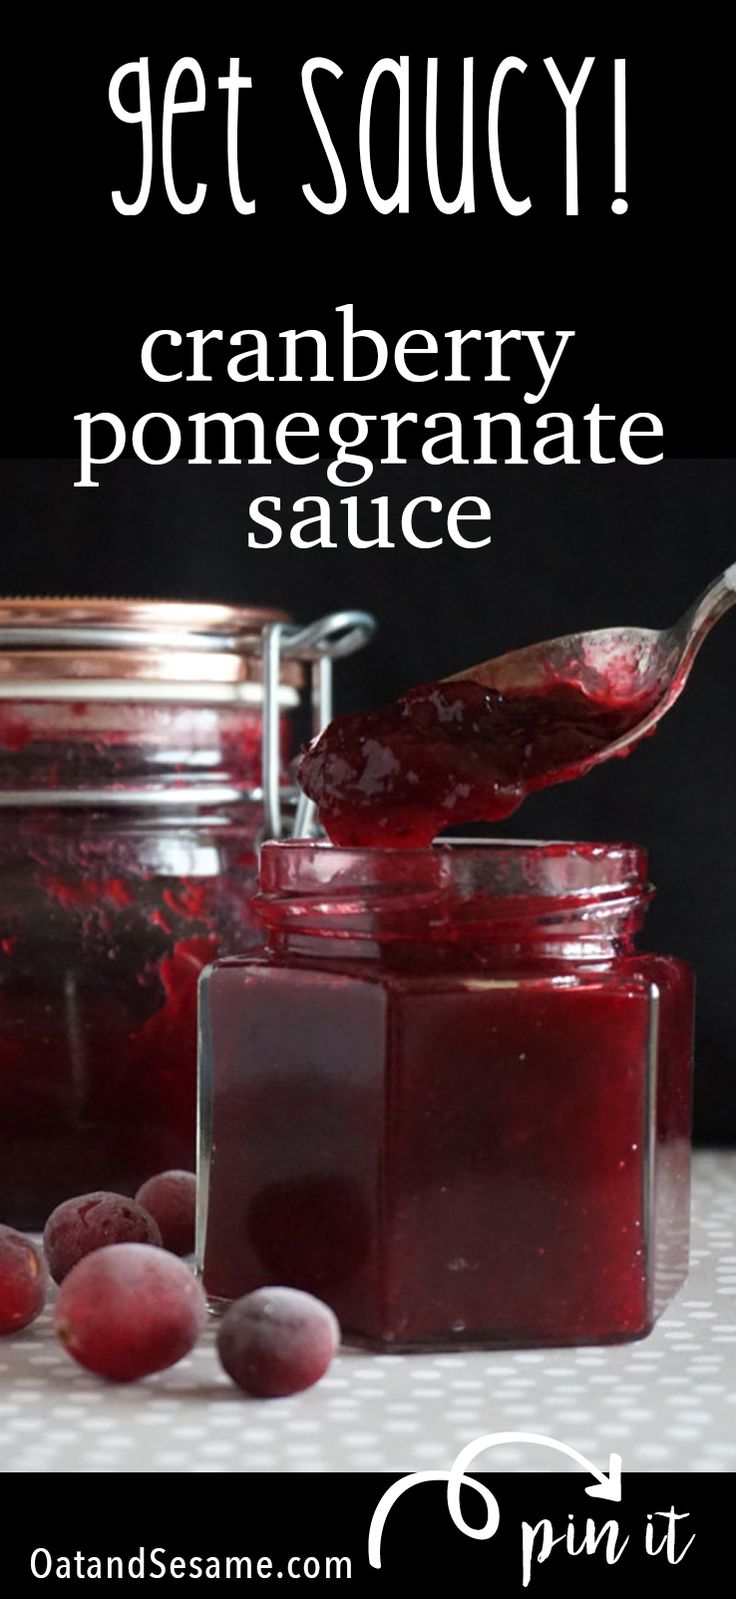 Super simple Cranberry Pomegranate Sauce for your Thanksgiving meal. I love it because it adds just a little twist on straight up cranberry sauce. | #CRANBERRY | #SAUCE | #THANKSGIVING | #QUICKBREAD | #Recipes at OatandSesame.com